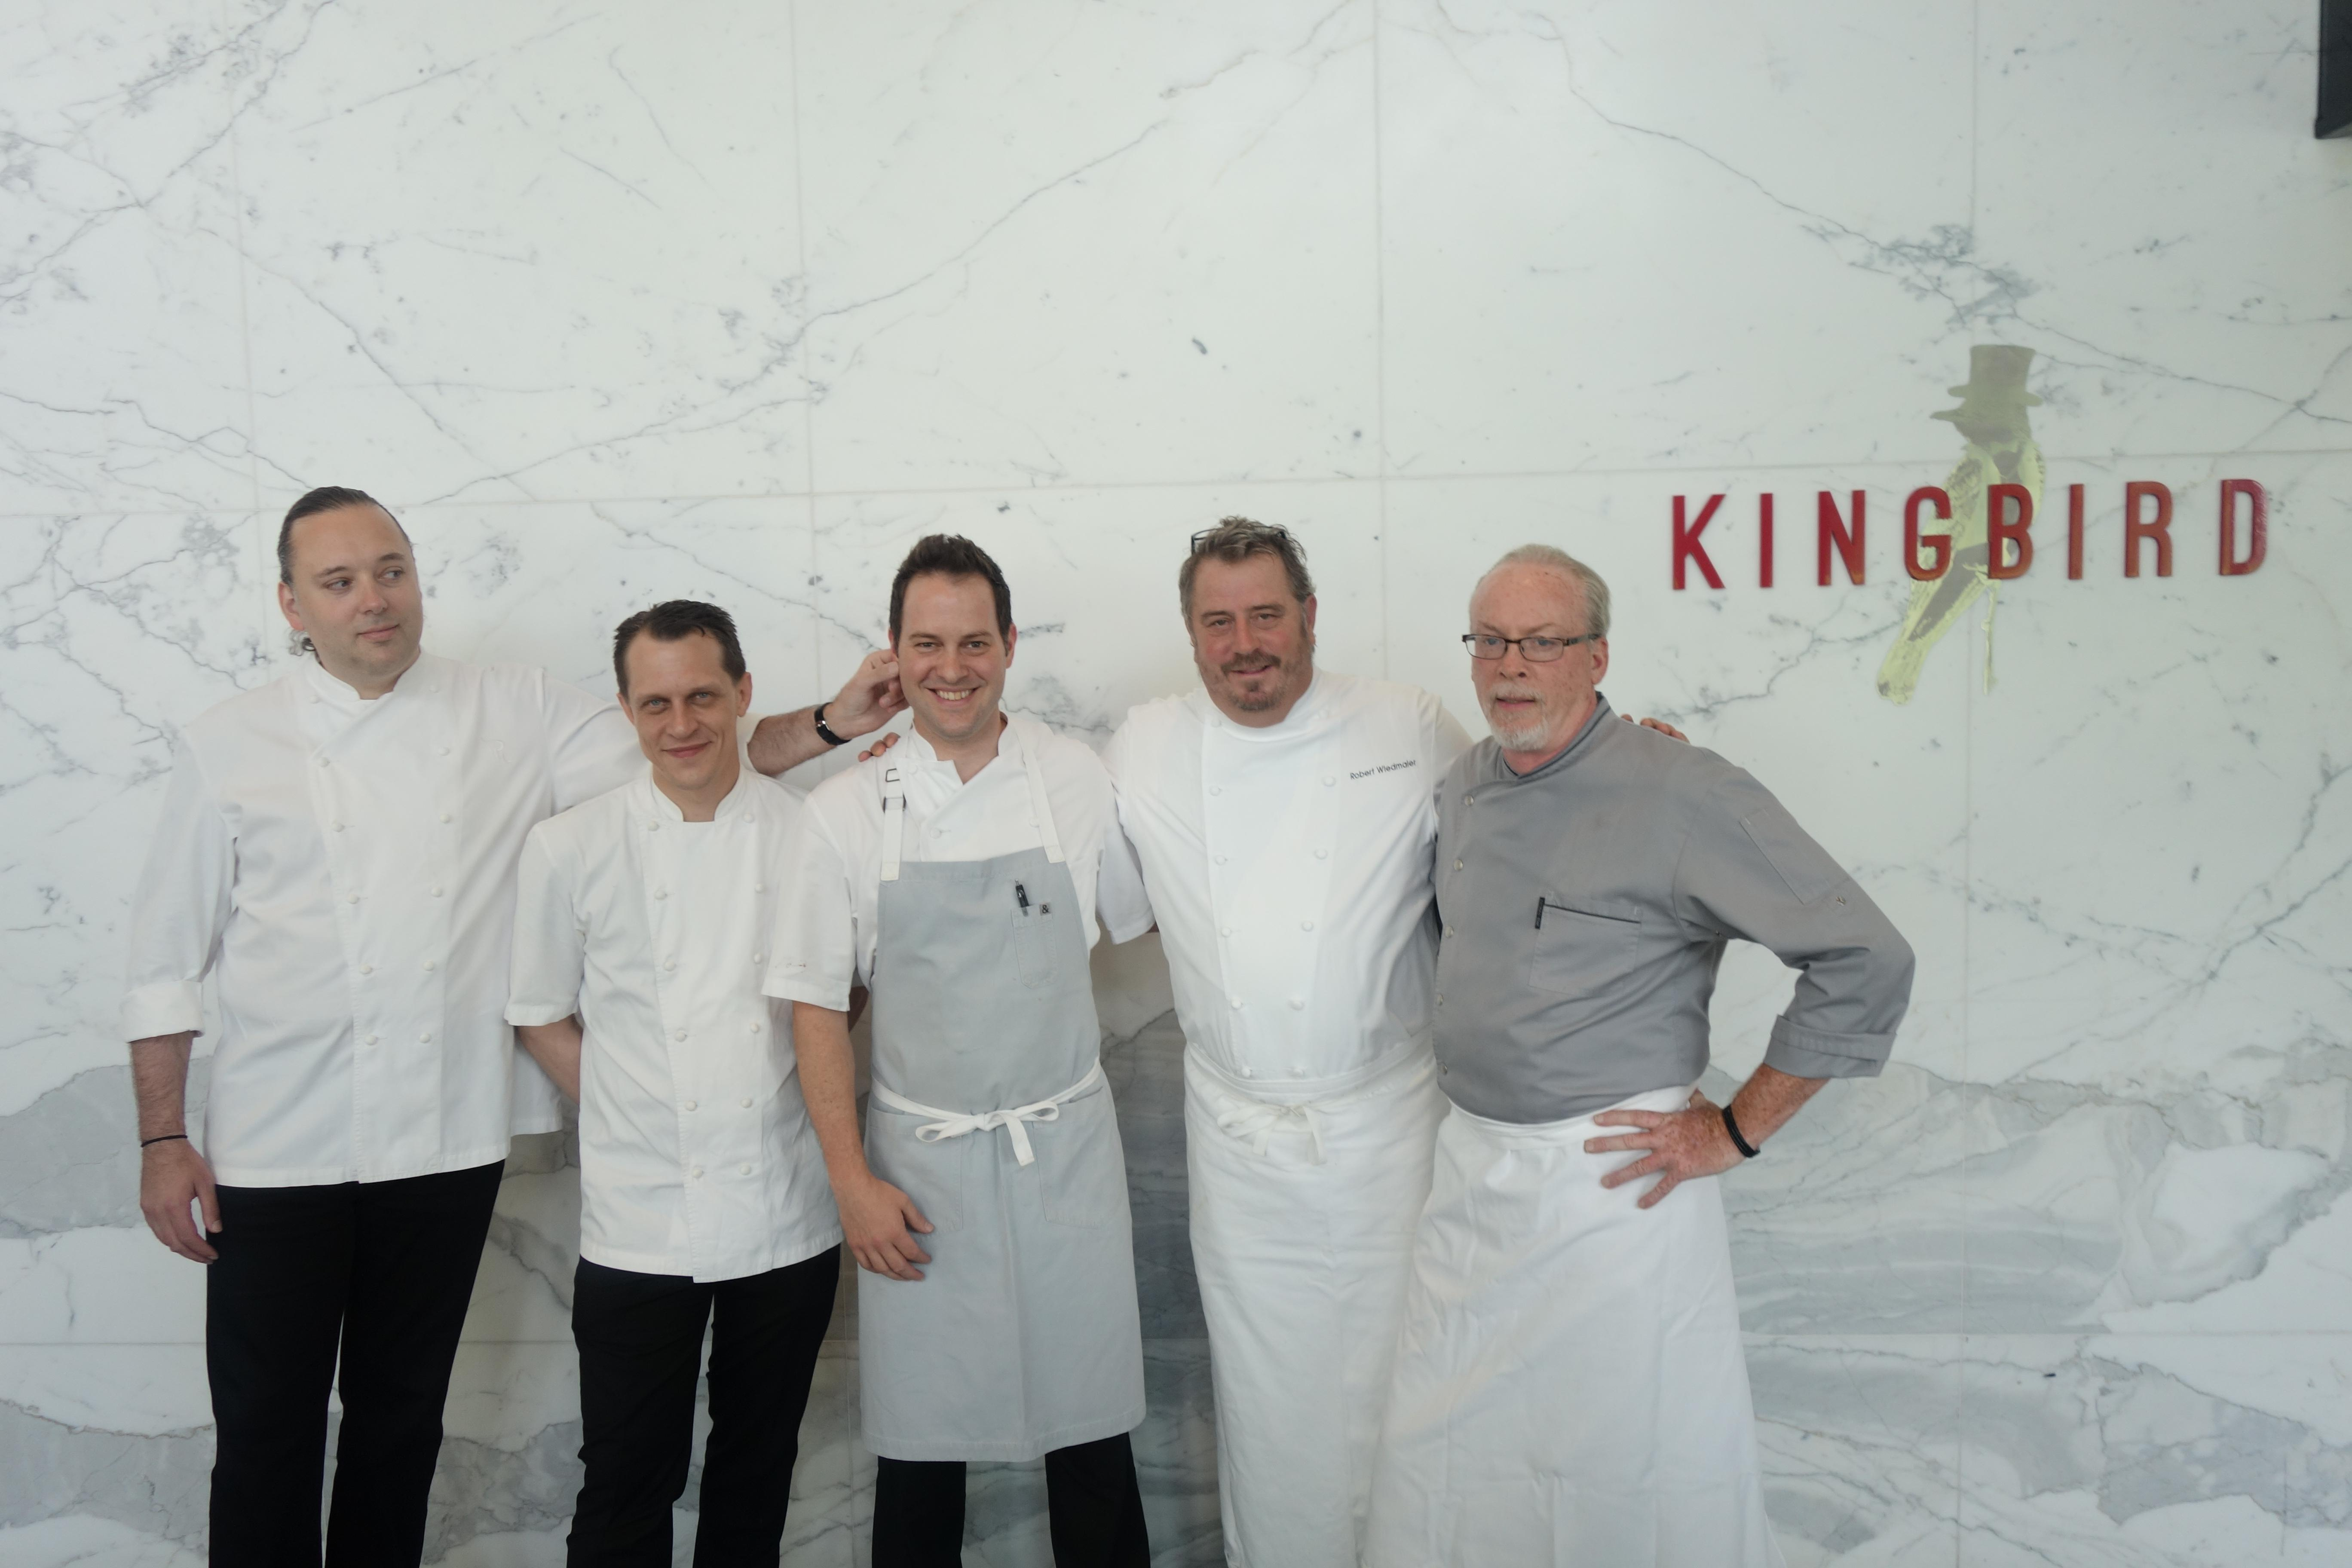 The chefs included Chef Paul Liebrandt, Chef Michael Laiskonis, the hotel's own Executive Chef Michael Santoro, Chef Robert Wiedmaier and Chef Brian McBride. (Image: Courtesy The Watergate Hotel)